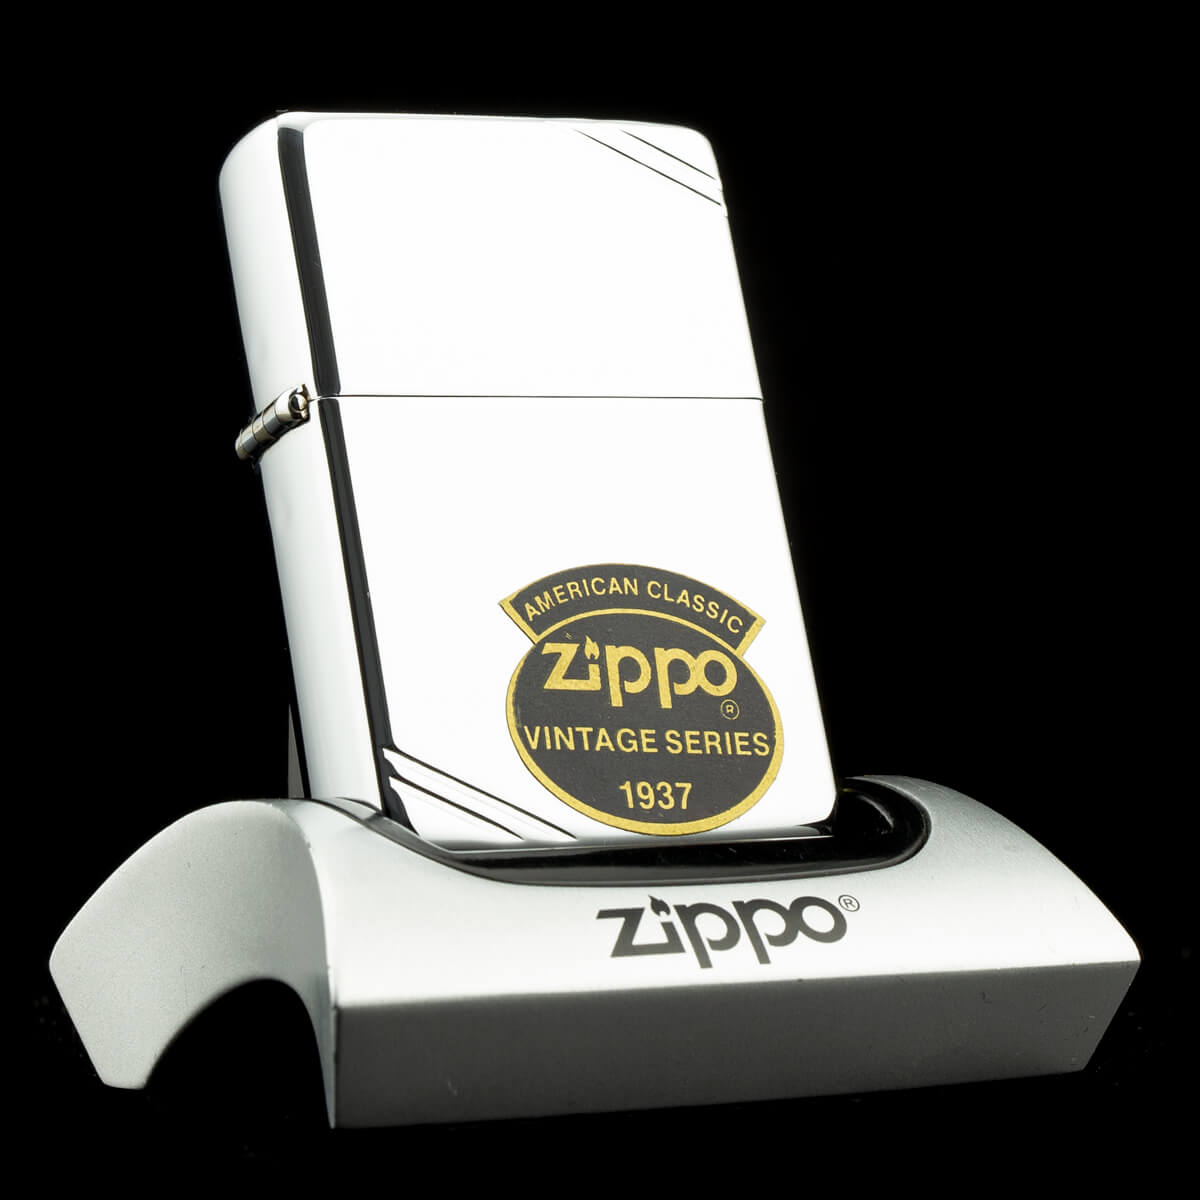 bat-lua-zippo-vintage-1937-high-polished-chrome-1985-i-mot-la-ma-sieu-hiem